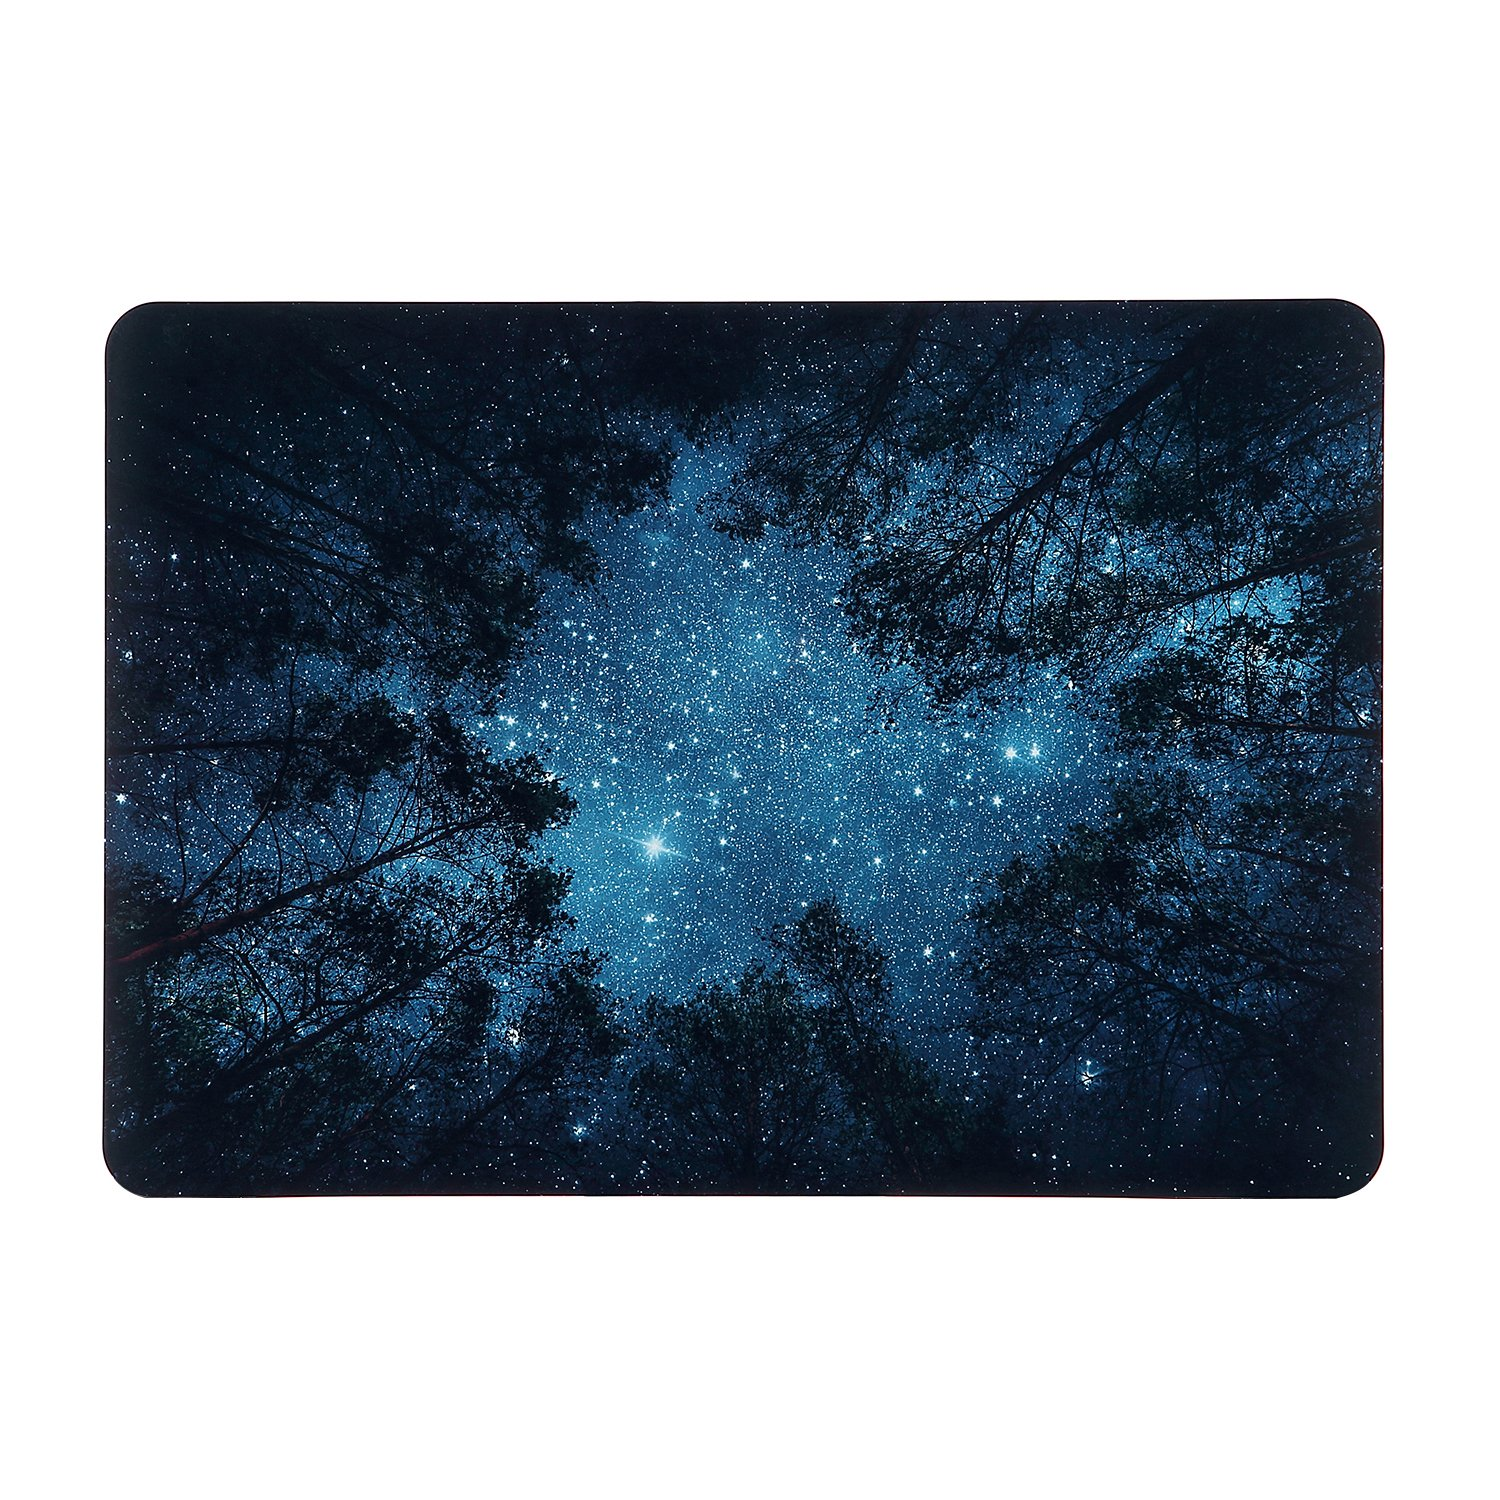 iDonzon Forest Starry MacBook Air 13 inch Case, Soft-Touch Matte Plastic Hard Protective Case Cover Only for MacBook Air 13.3 inch (Model: A1369 & A1466)